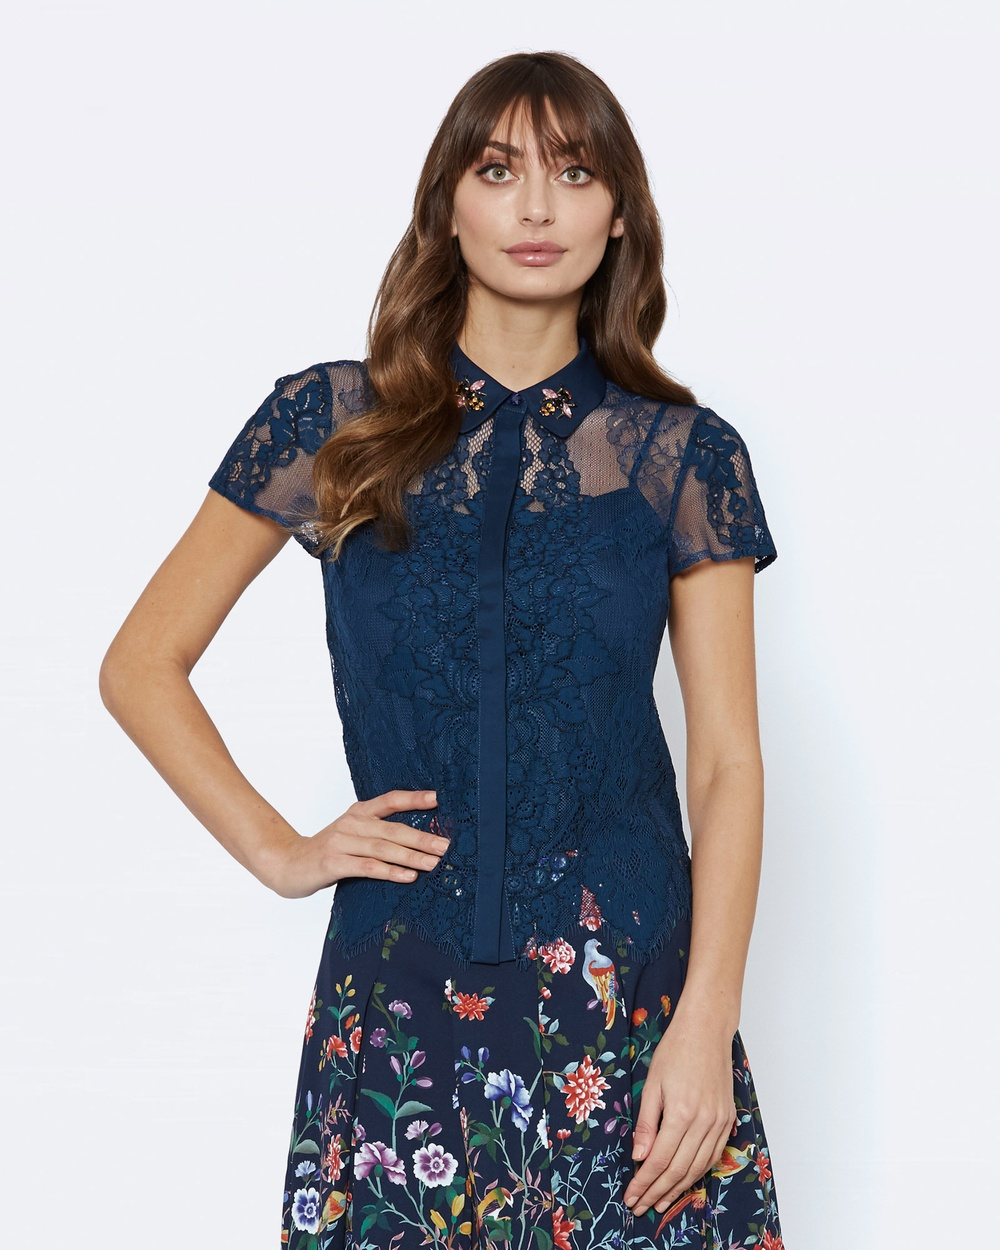 Alannah Hill Bee Mine Lace Blouse Tops Blue Bee Mine Lace Blouse